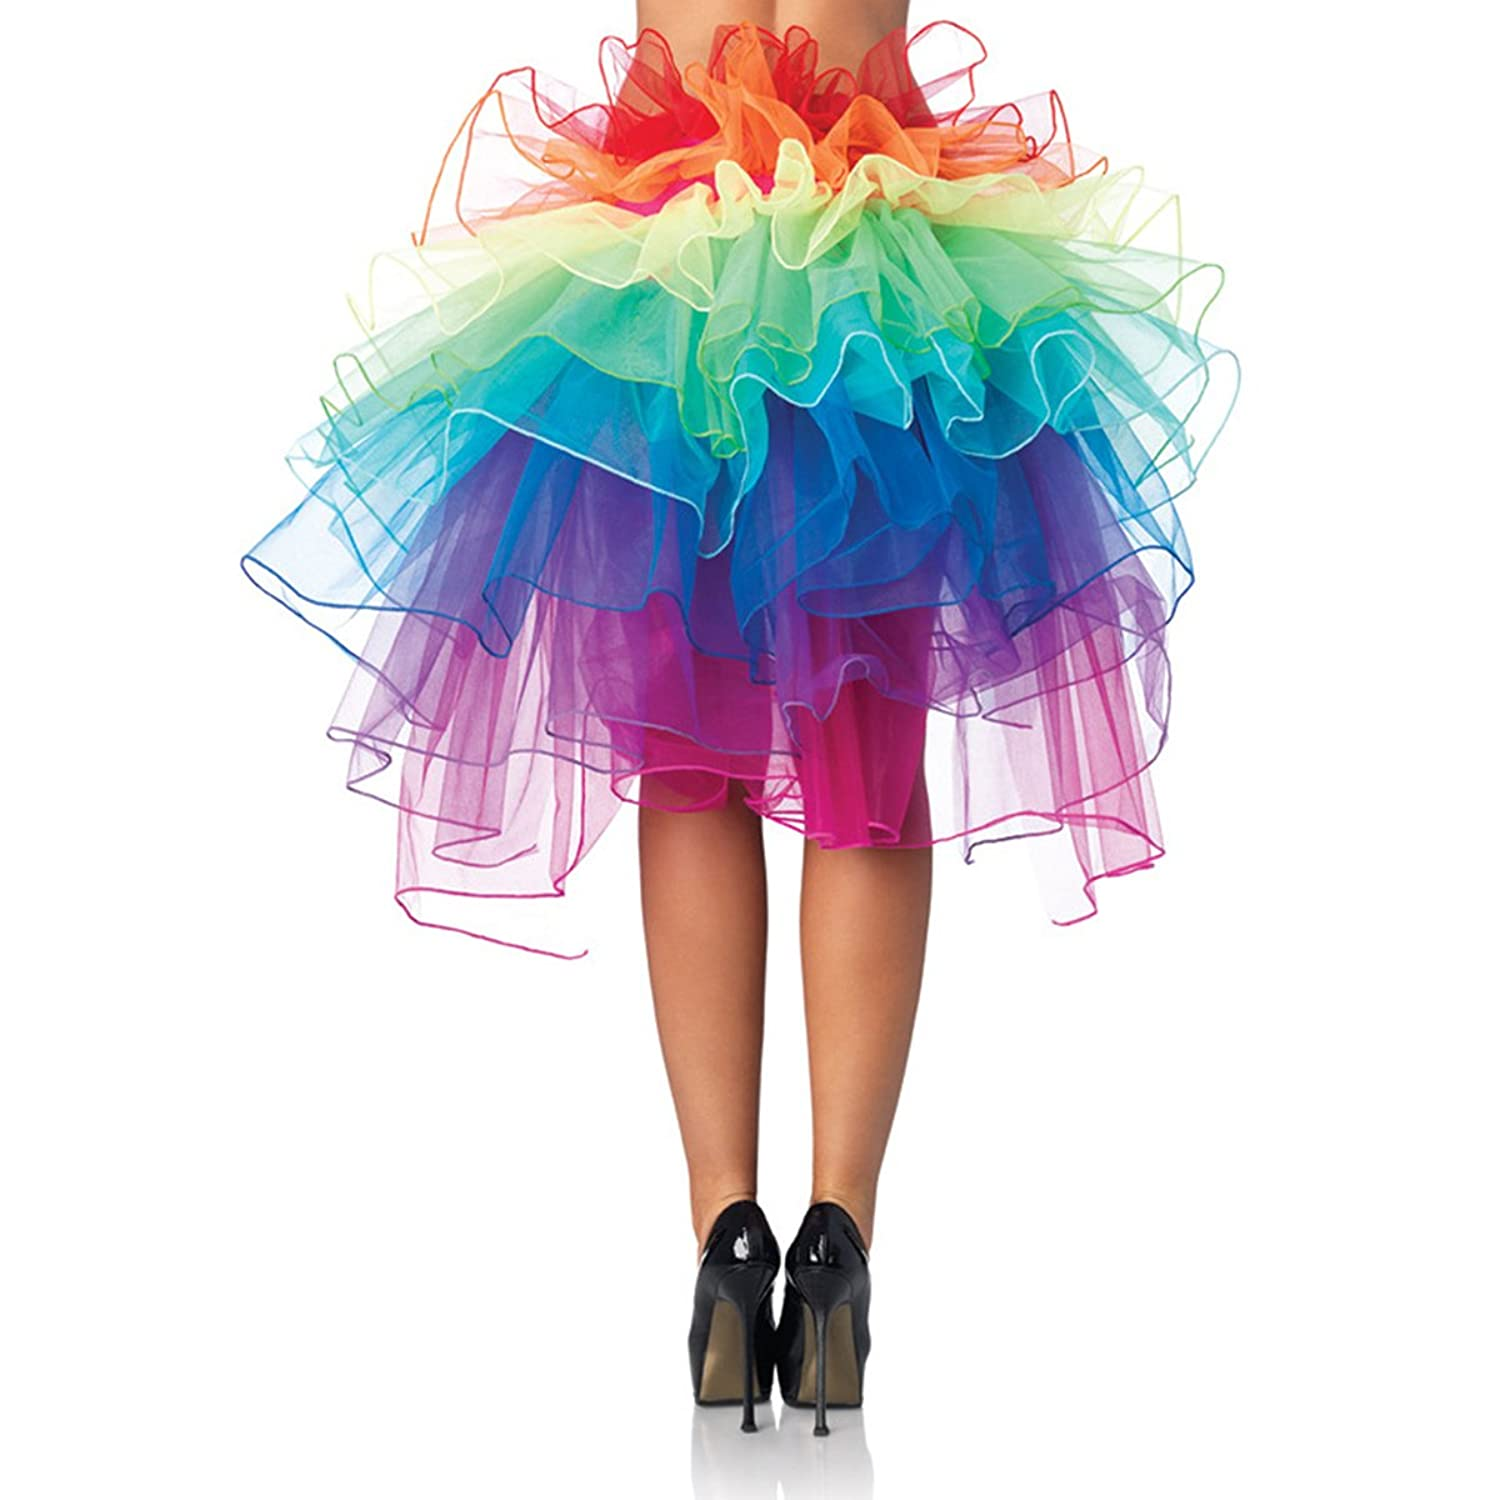 6c28ba7cc With free size suitable for most women. This edgy rainbow tutu dress  consists of layers tulle sheer in multicolor ...